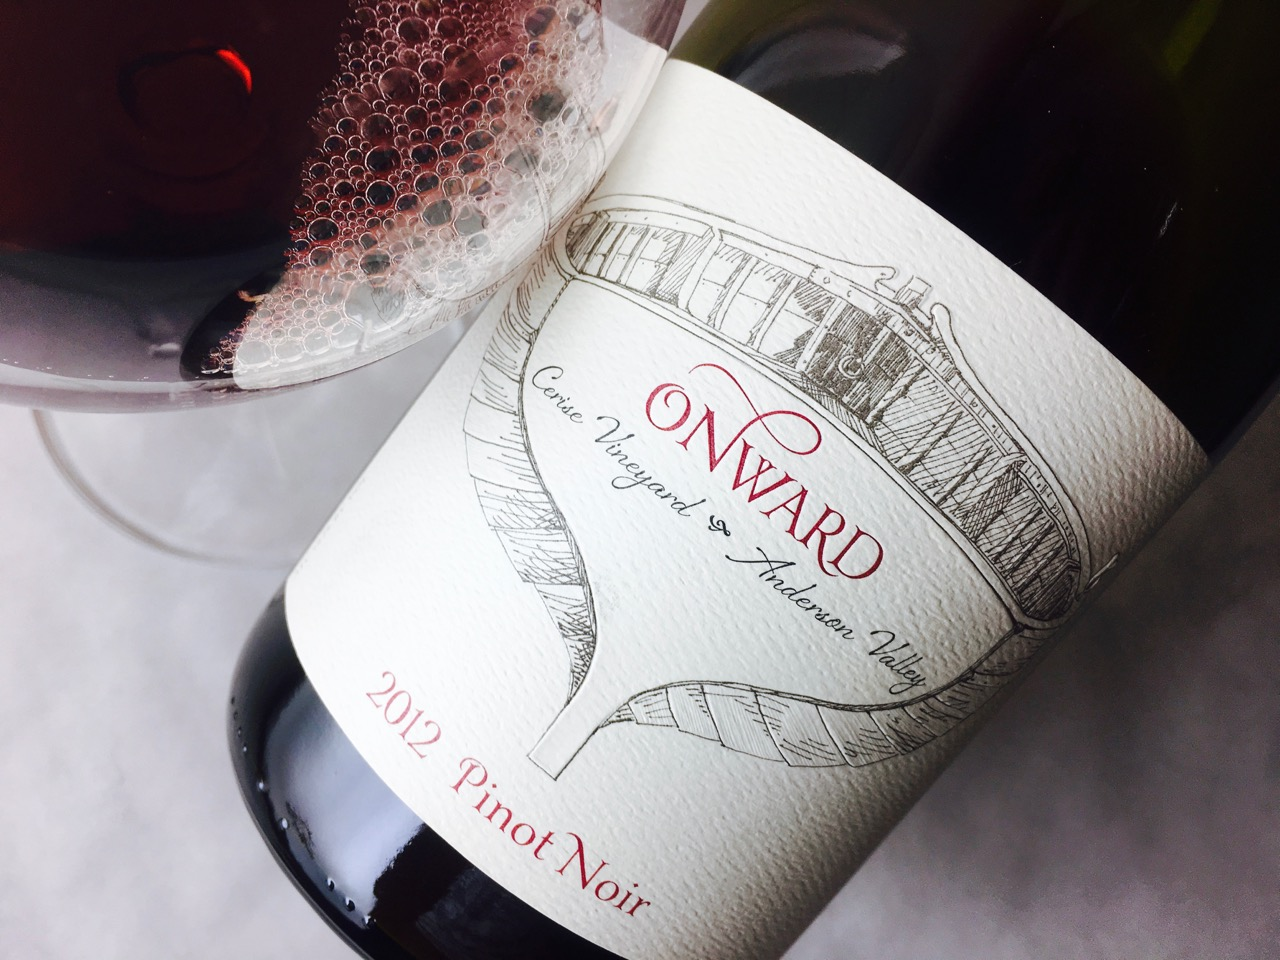 2012 Onward Pinot Noir Cerise Vineyard Anderson Valley